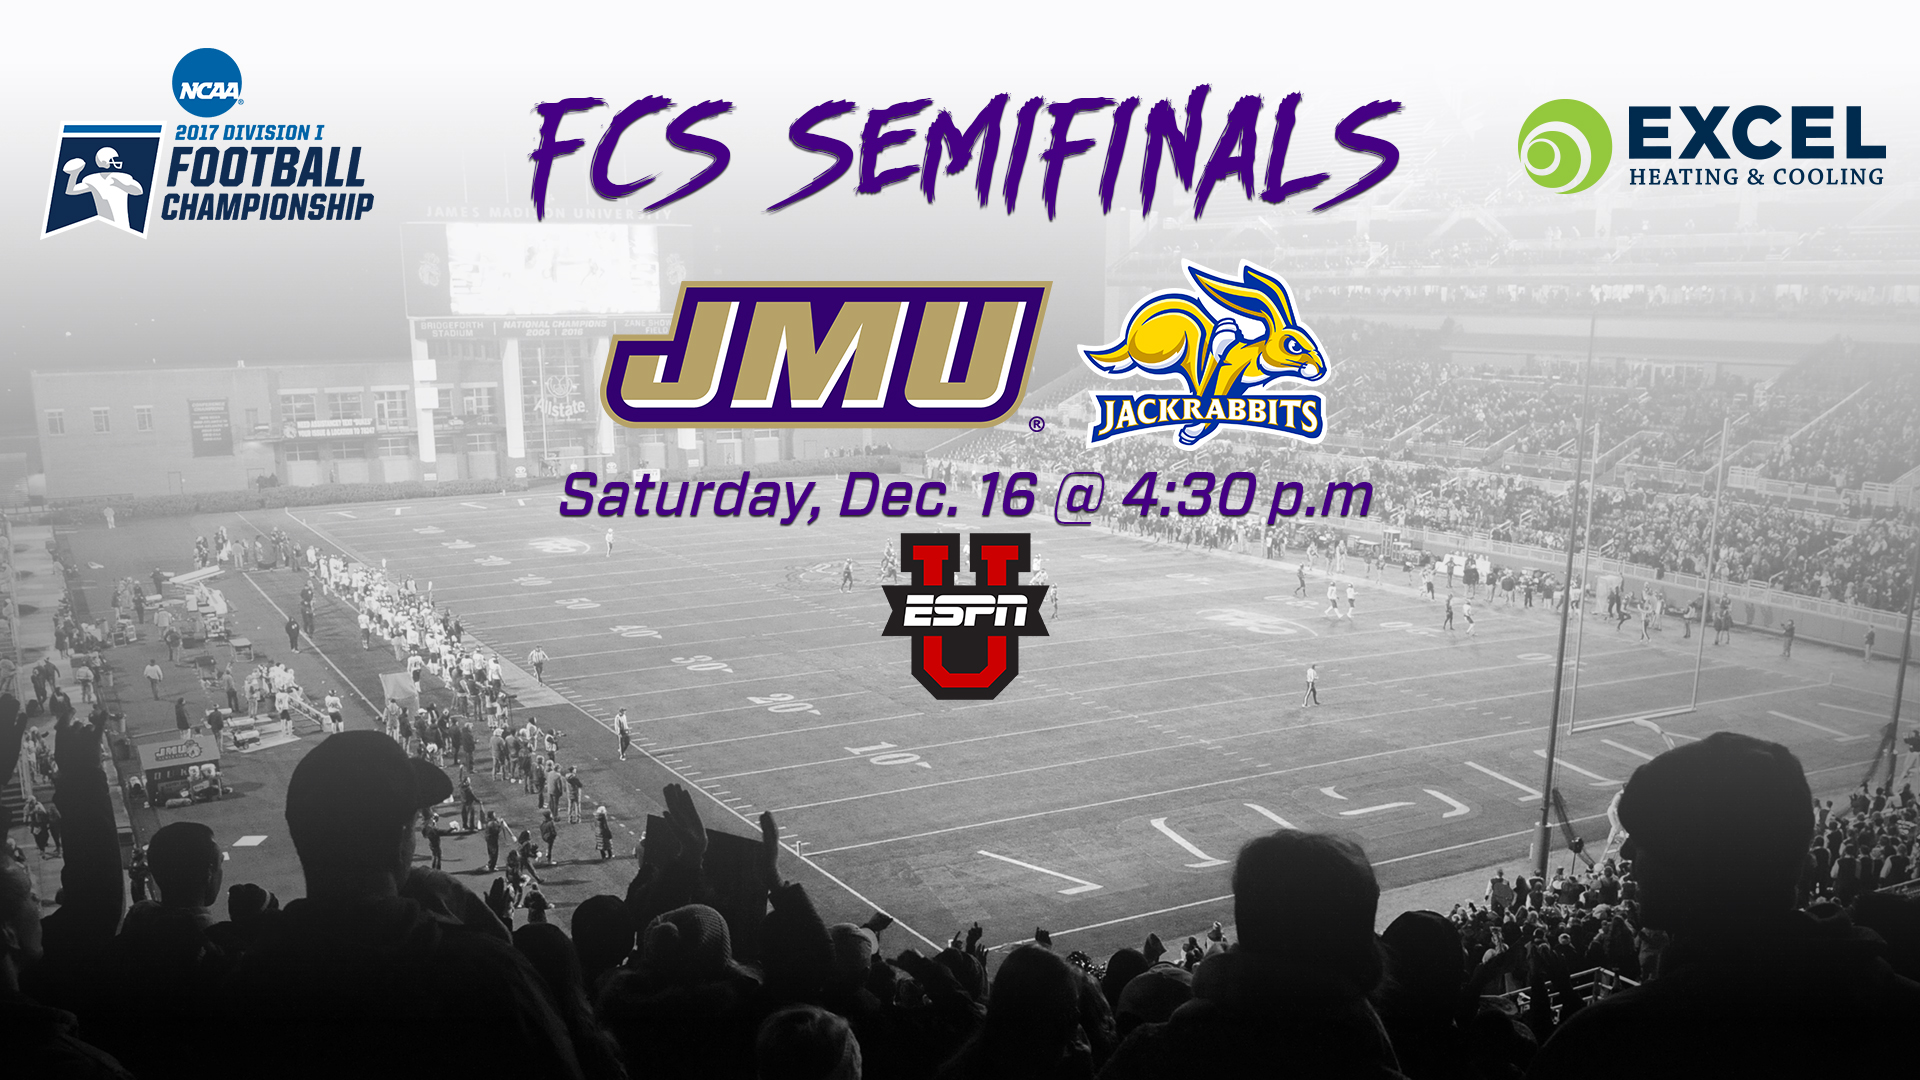 Football: Top-Seeded JMU to Face No. 5 South Dakota State at Home in National Semis)